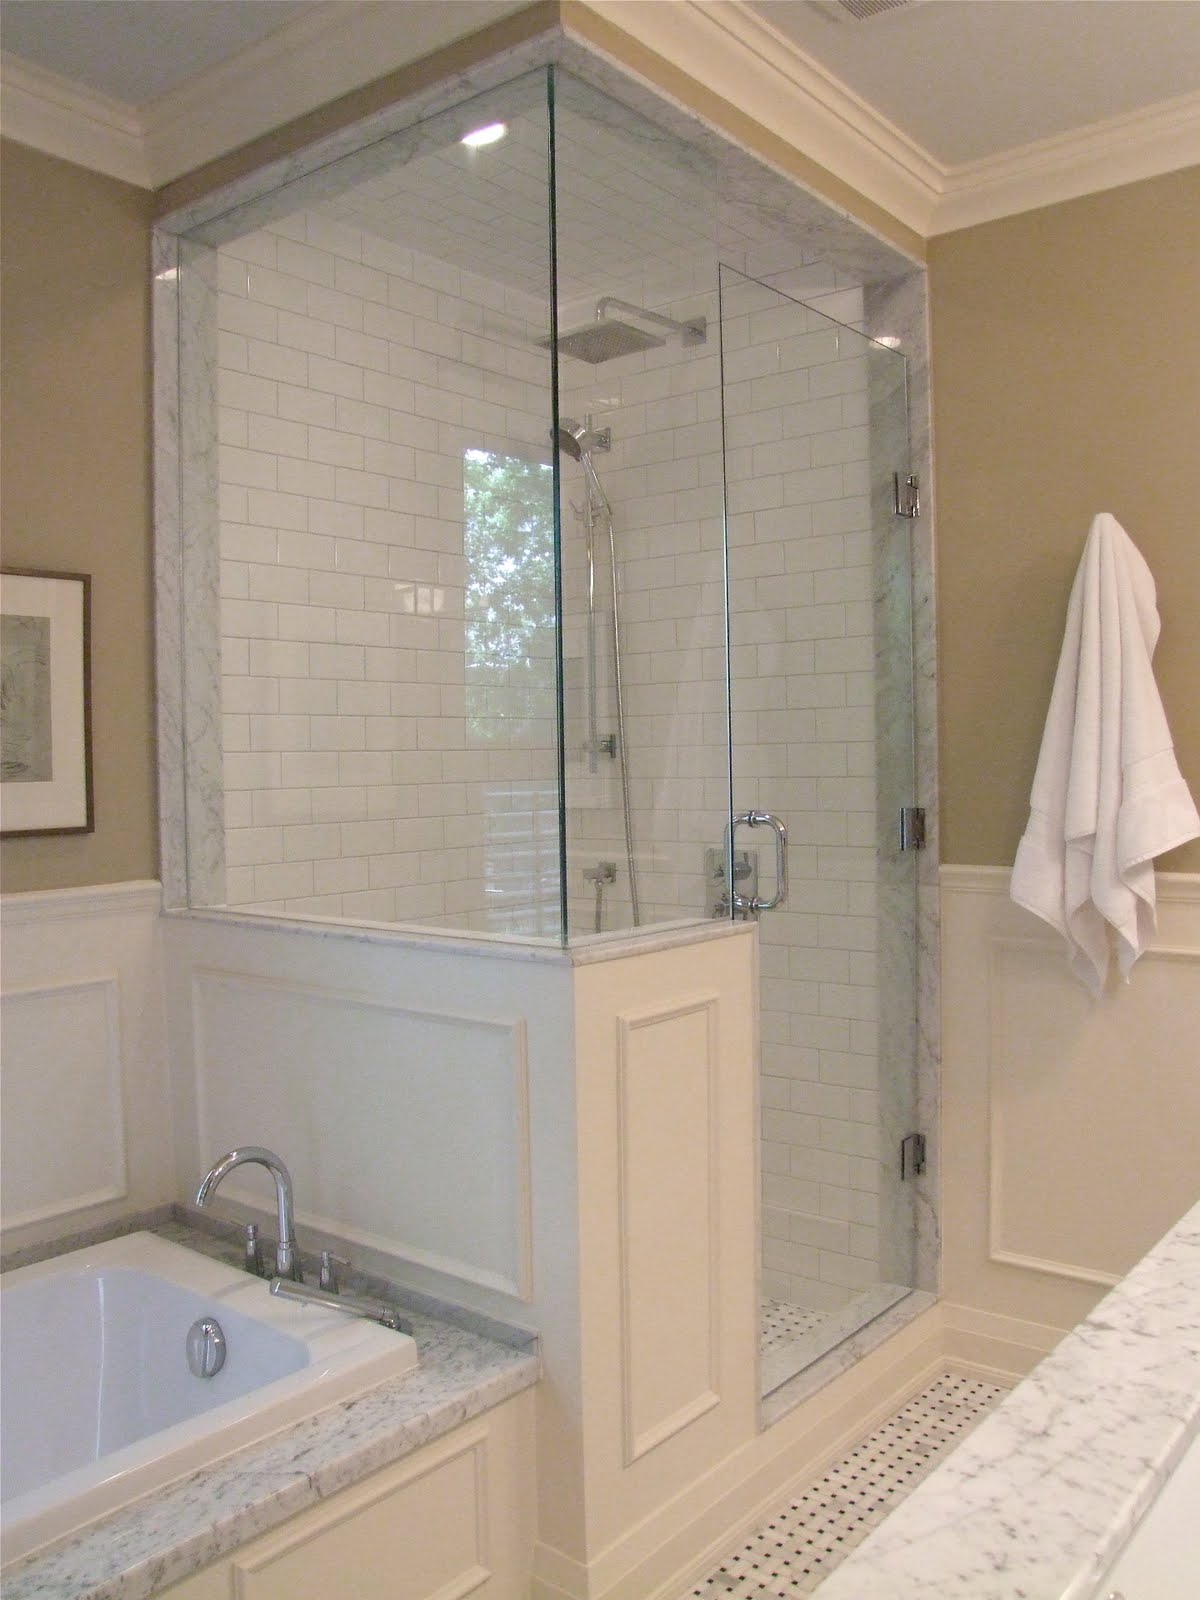 Creed after e design bathroom project part 2 for Master bath remodel